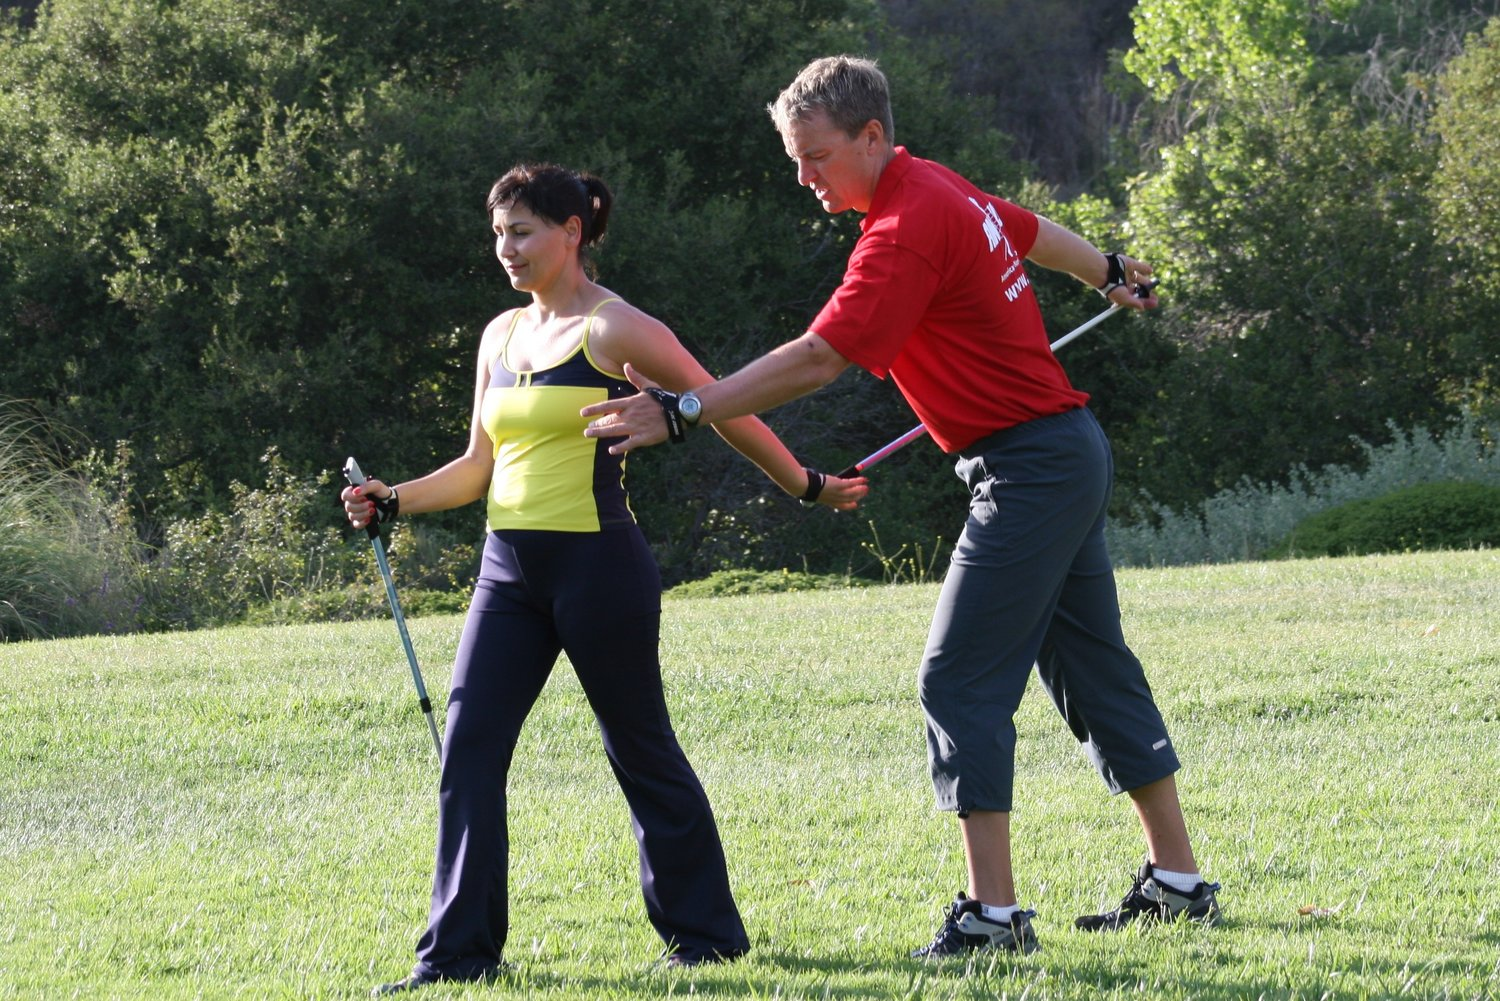 Personalized Online Nordic Walking Training.jpg